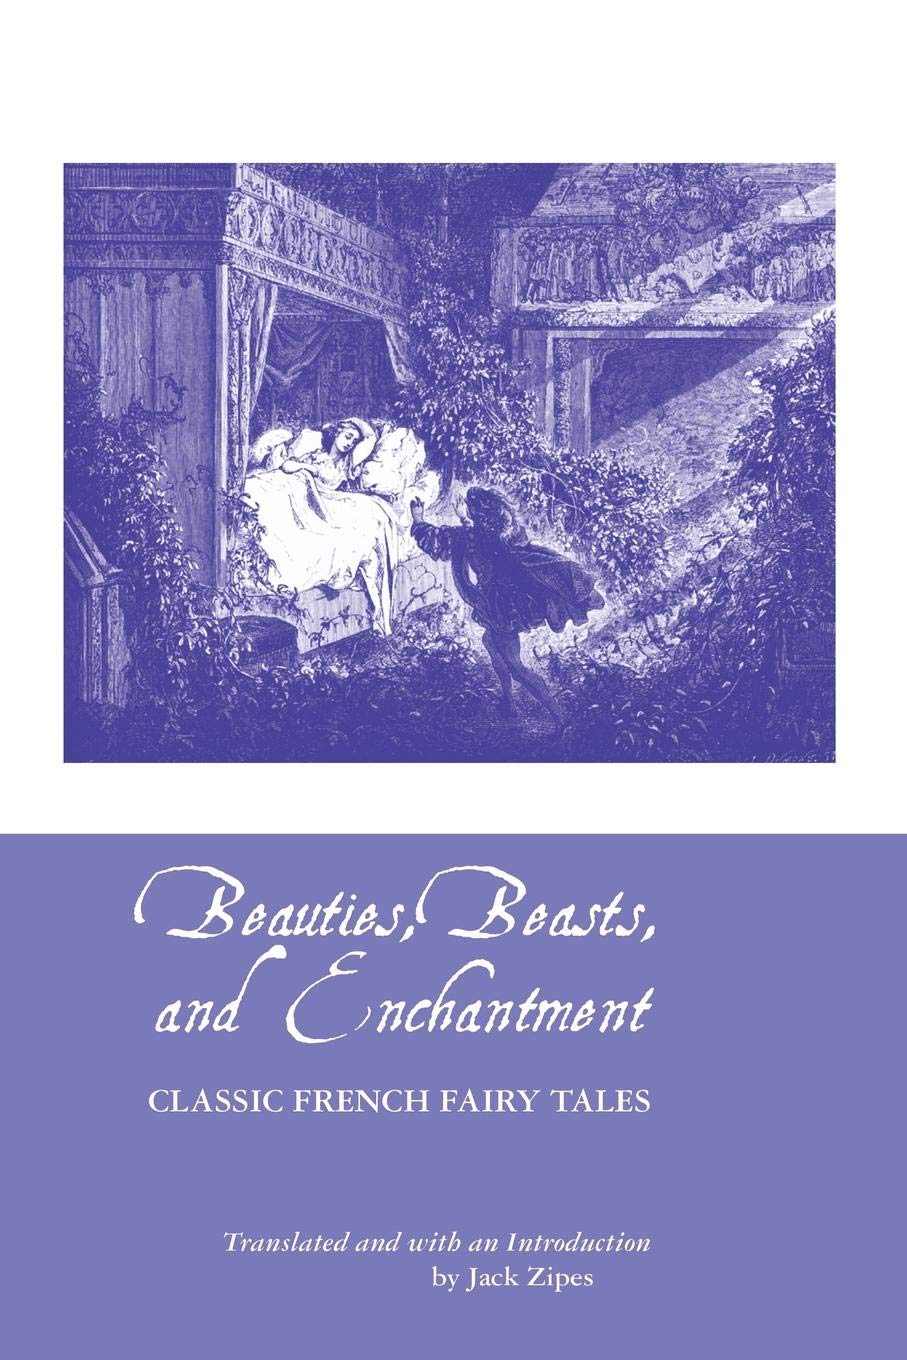 Read Online Beauties, Beasts and Enchantment: Classic French Fairy Tales (European Writers) pdf epub